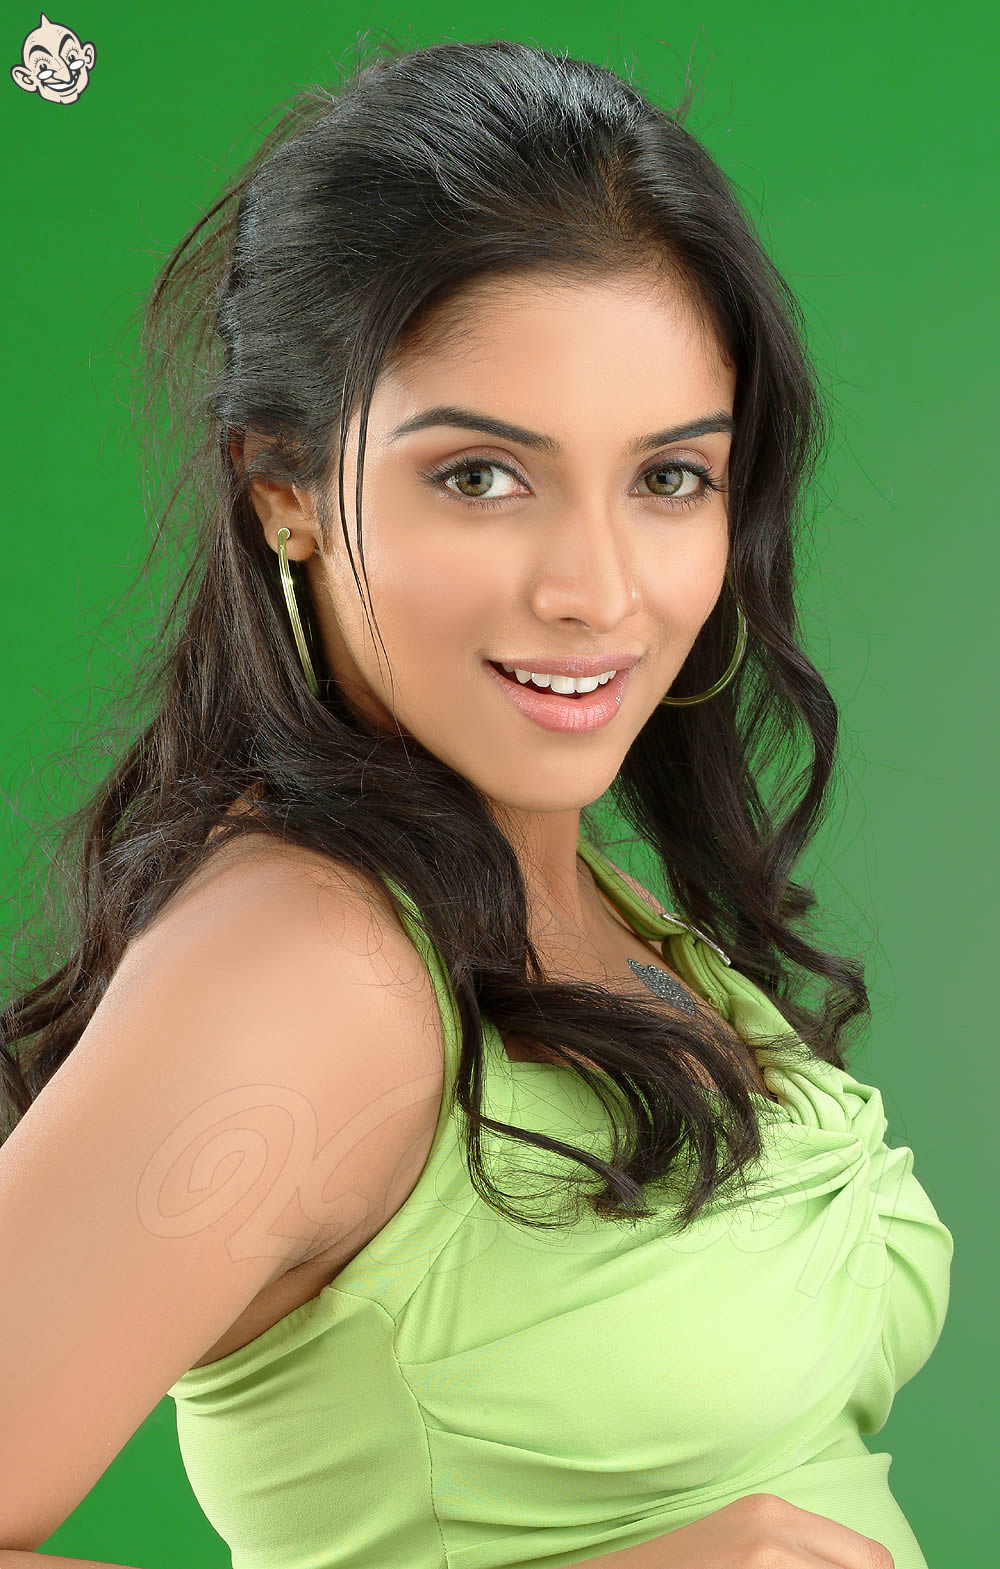 Asin03 Beautiful Asin Desktop Wallpapers babes